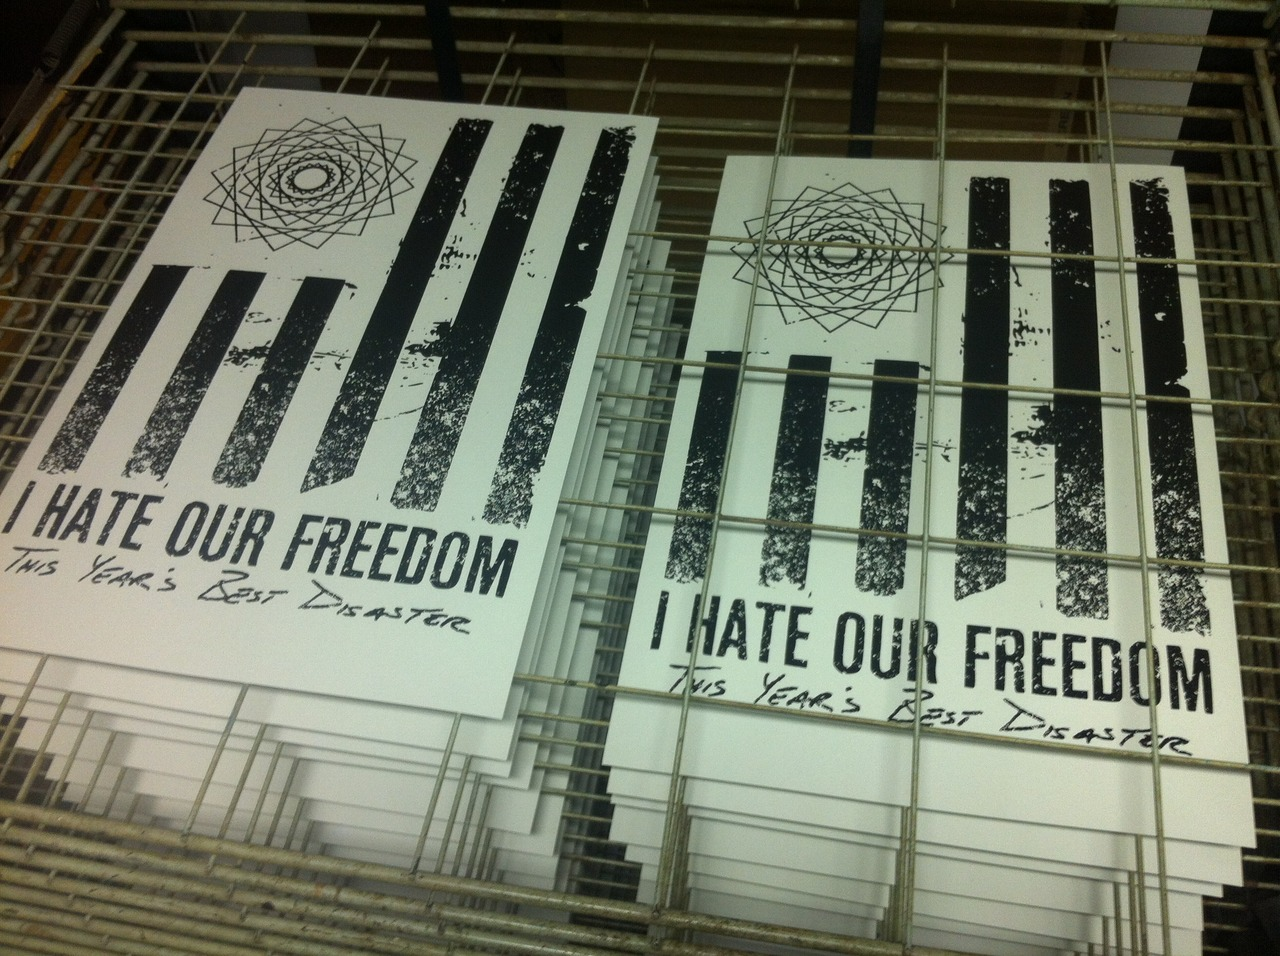 Hot off the press! Hand screened and numbered. Limited to 50. Pre-order the I Hate Our Freedom album from  our webstore  and get one of these bad boys!